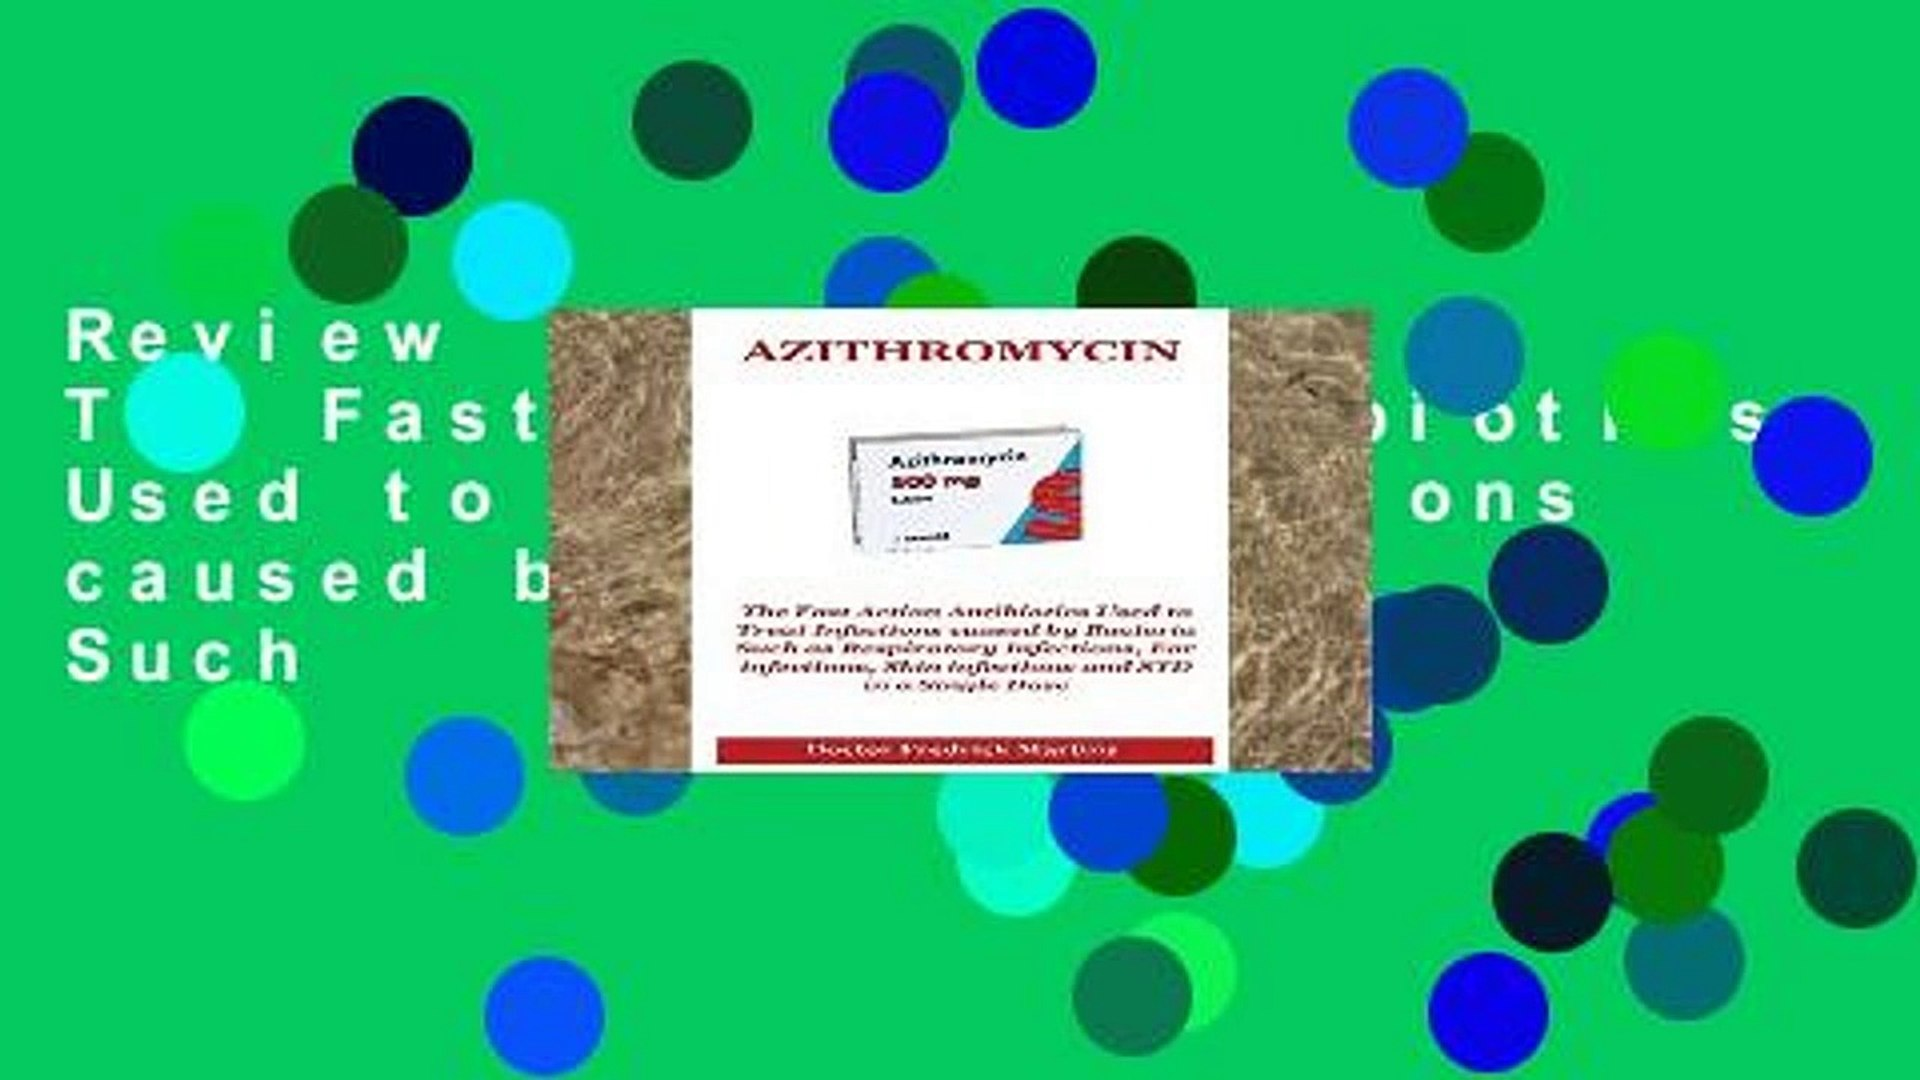 Review  Azithromycin: The Fast Action Antibiotics Used to Treat Infections caused by Bacteria Such